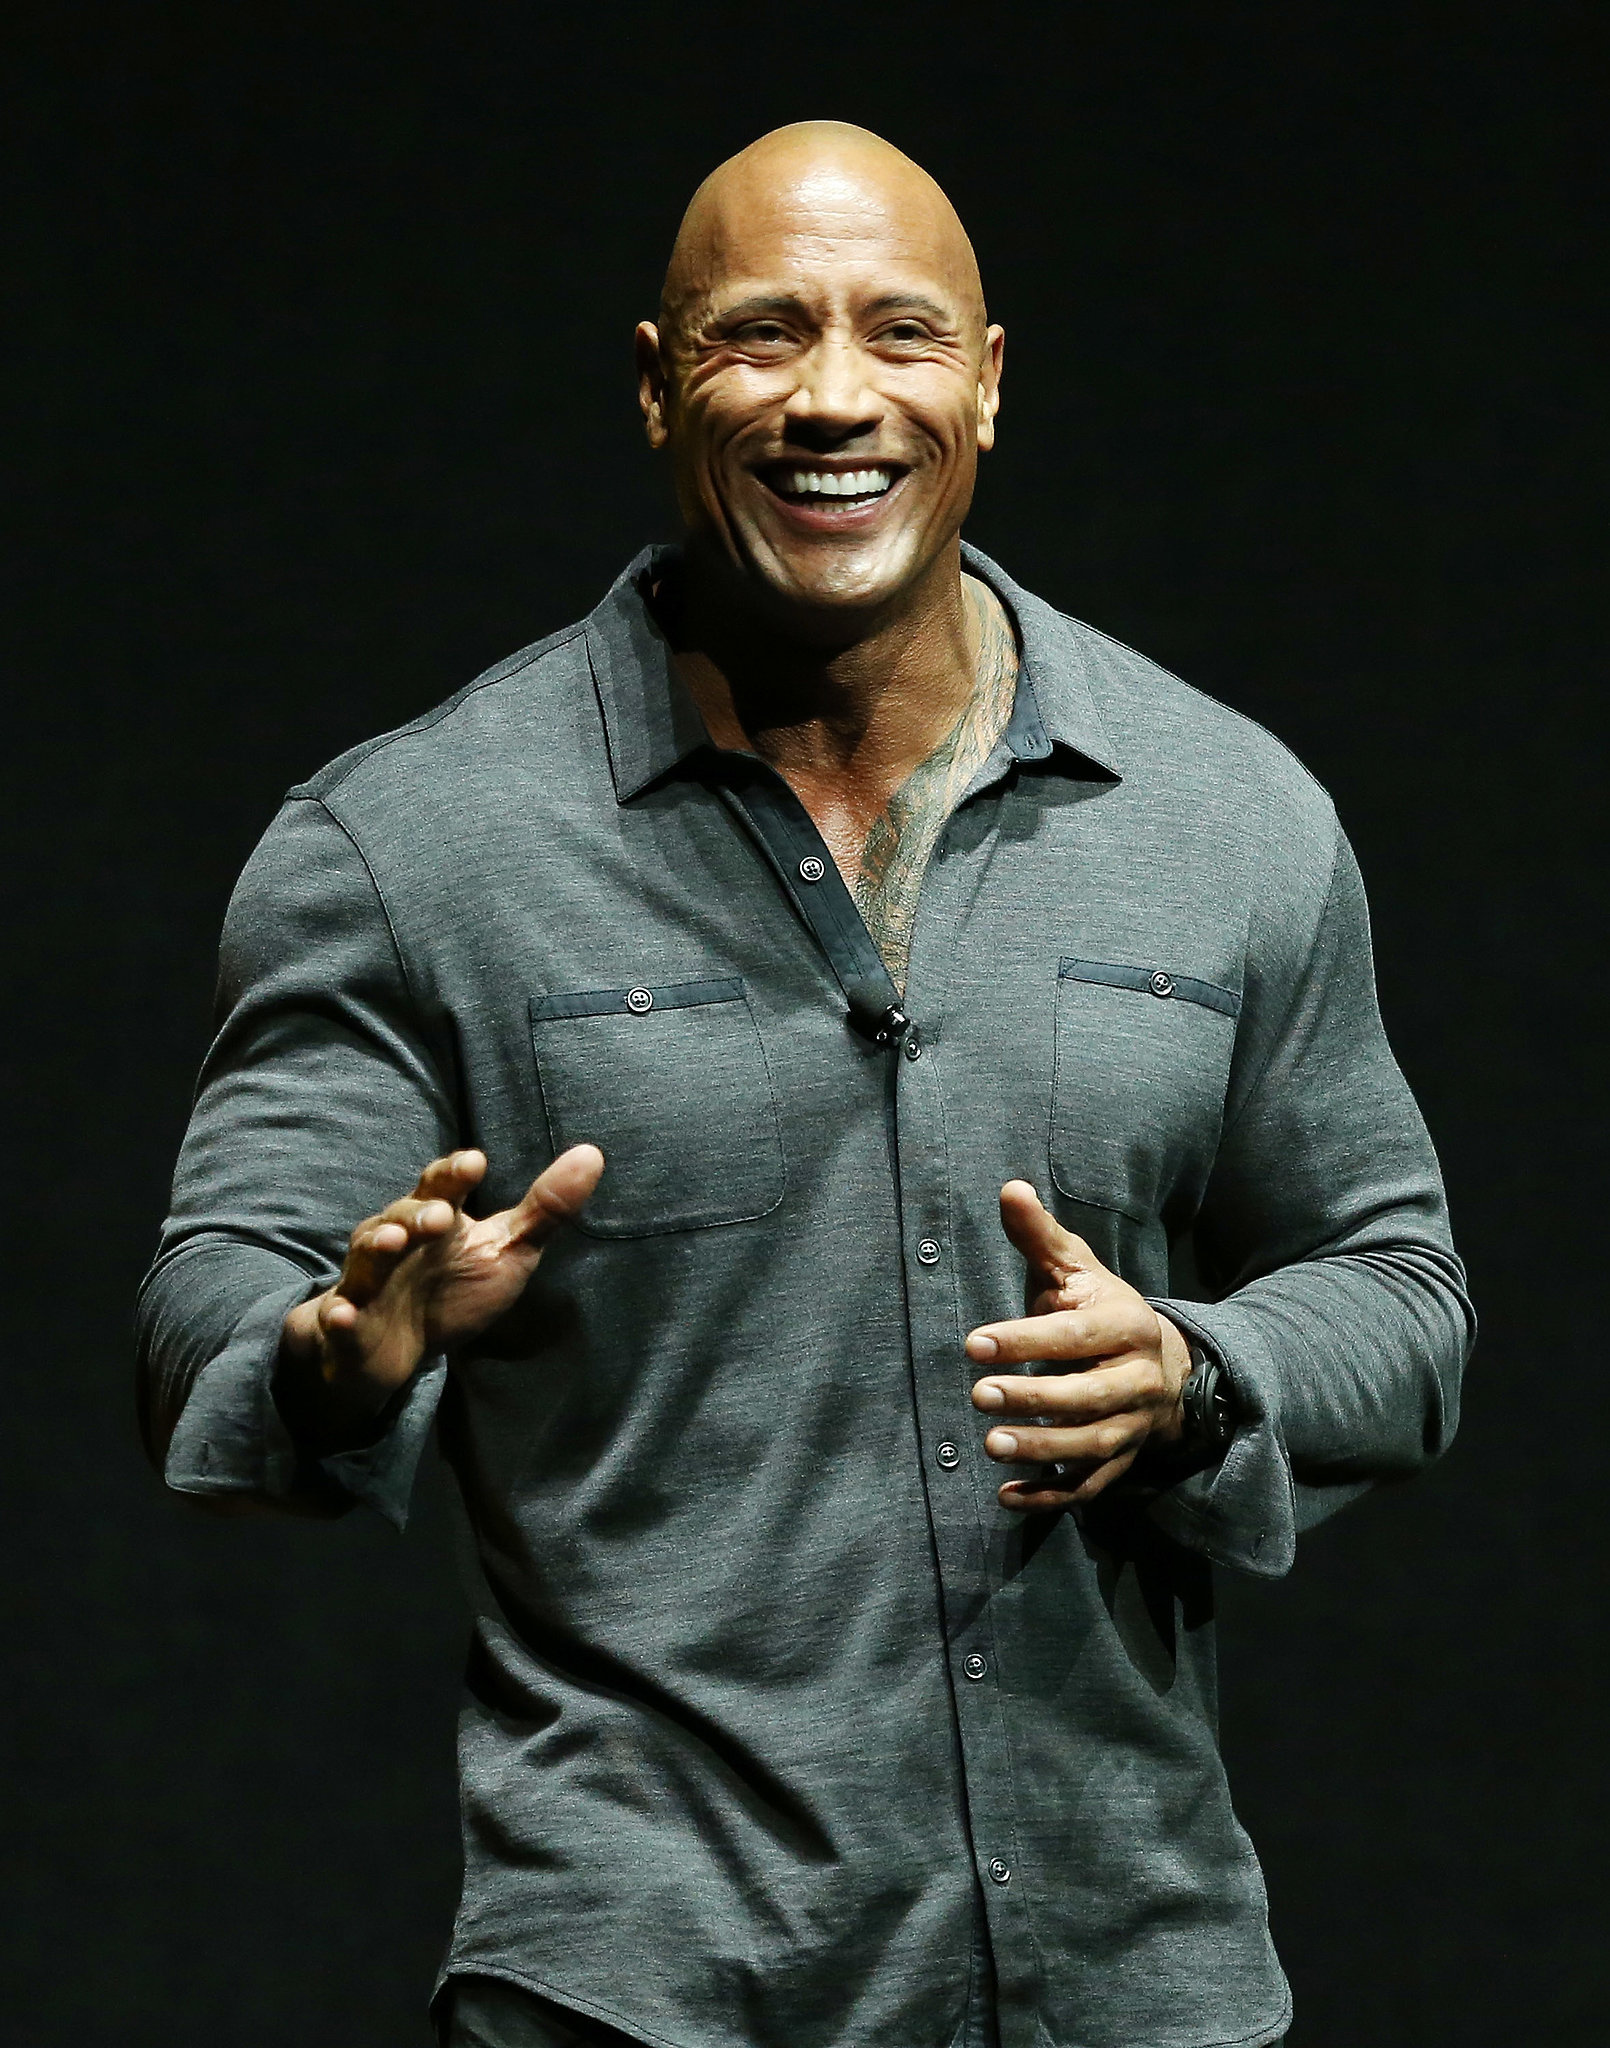 dwayne johnson - photo #27